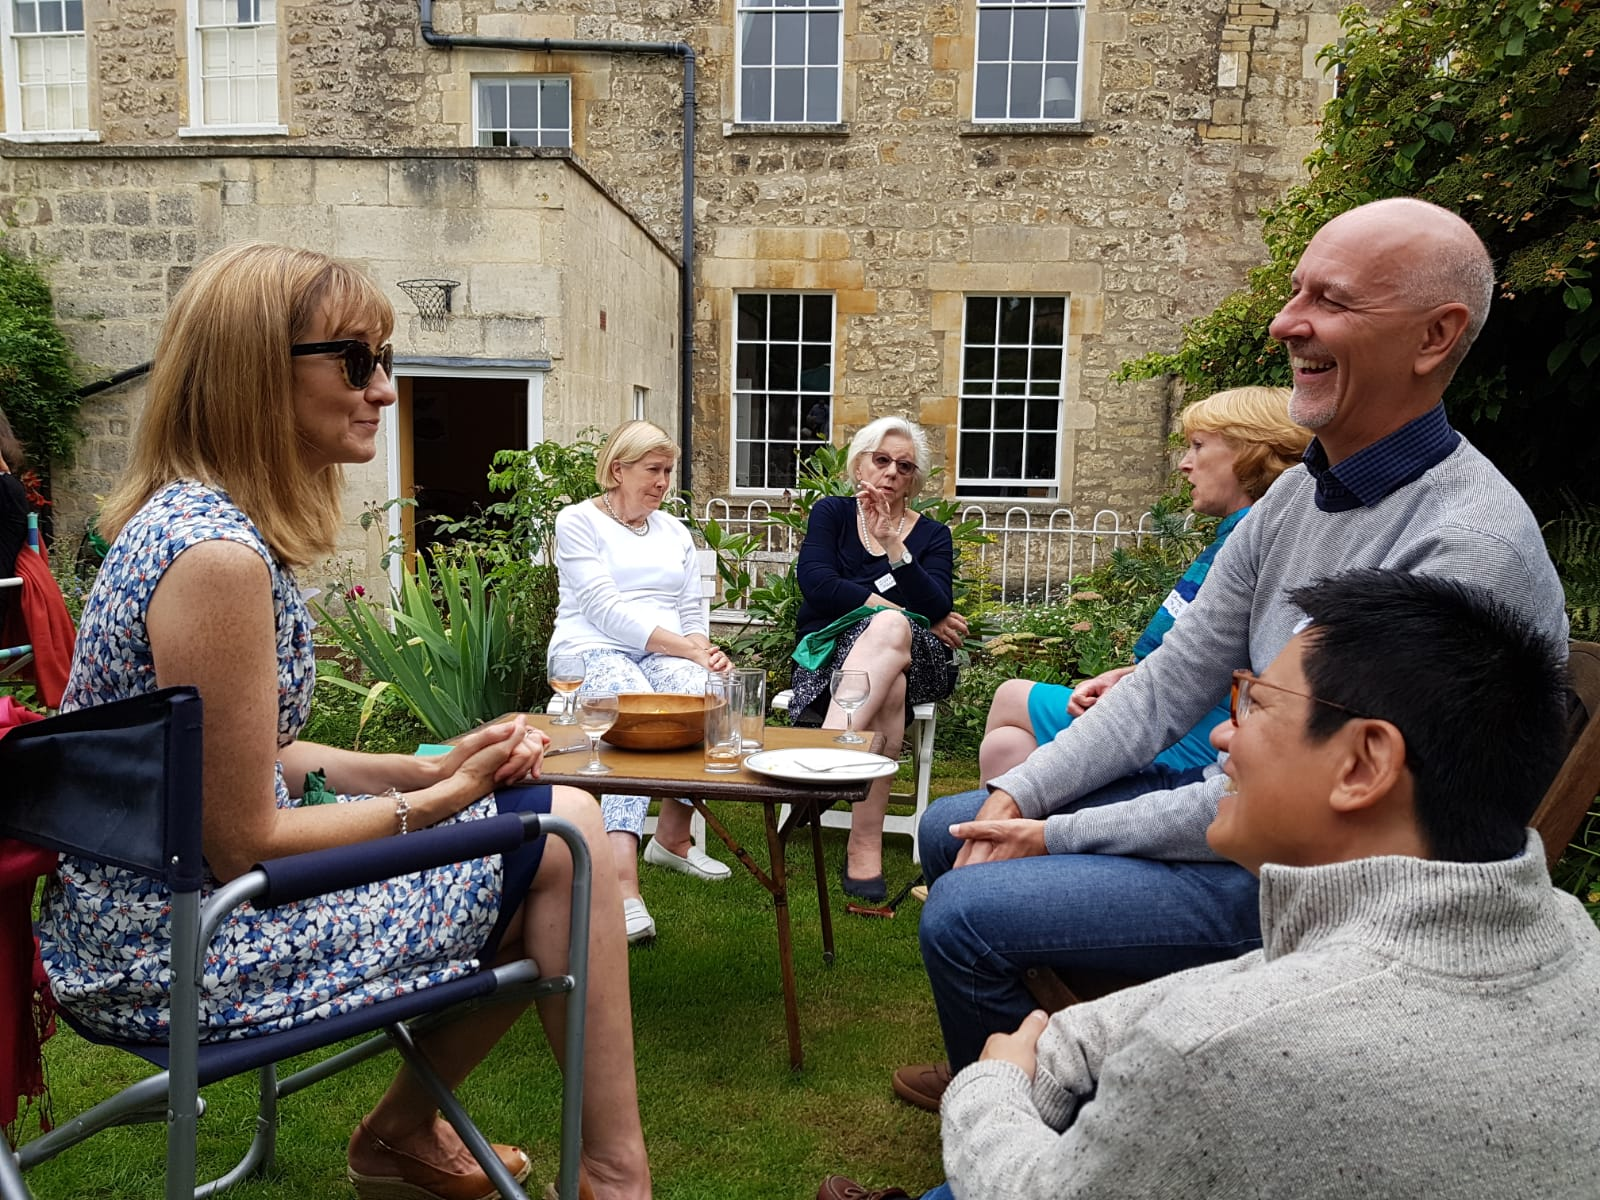 Catching up with neighbours, Summer Party 2.9.18